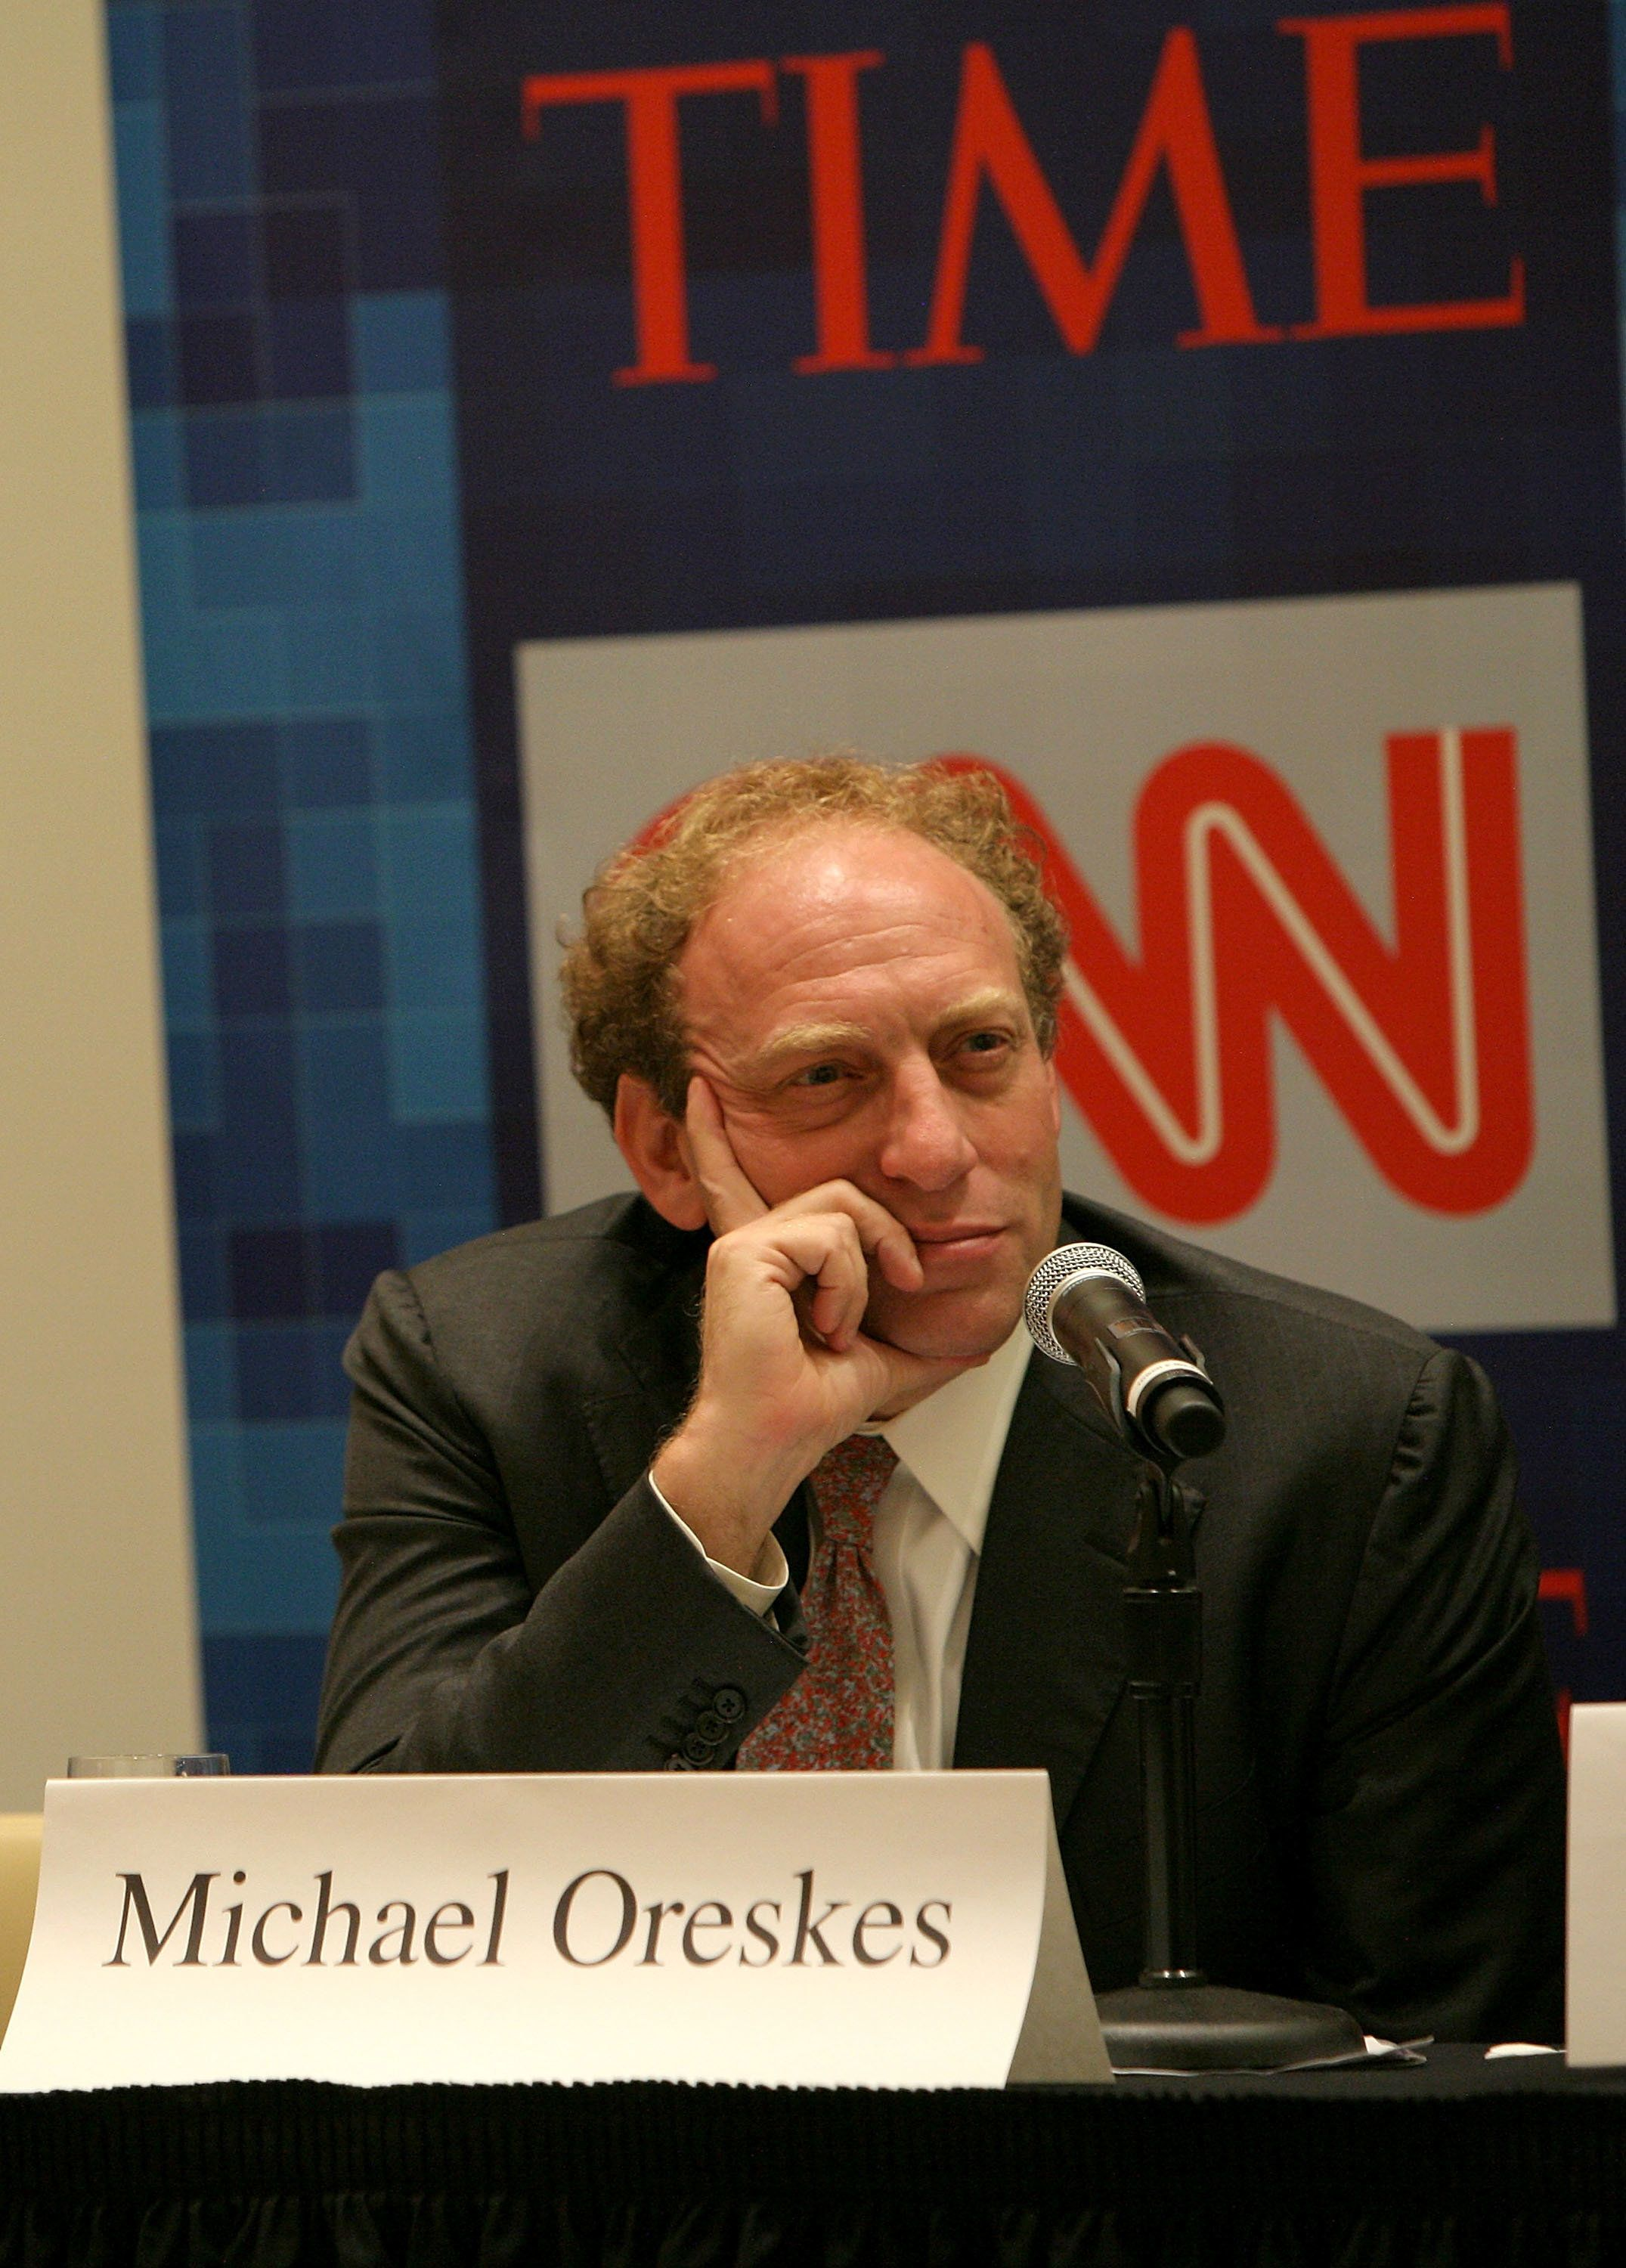 NEW YORK - OCTOBER 13:  Managing Editor of U.S. News for Associated Press Michael Oreskes speaks during Time Warner's Political Conference 2008 at the Time Warner Center on October 13, 2008 in New York City.  (Photo by David S. Holloway/Getty Images for Turner)